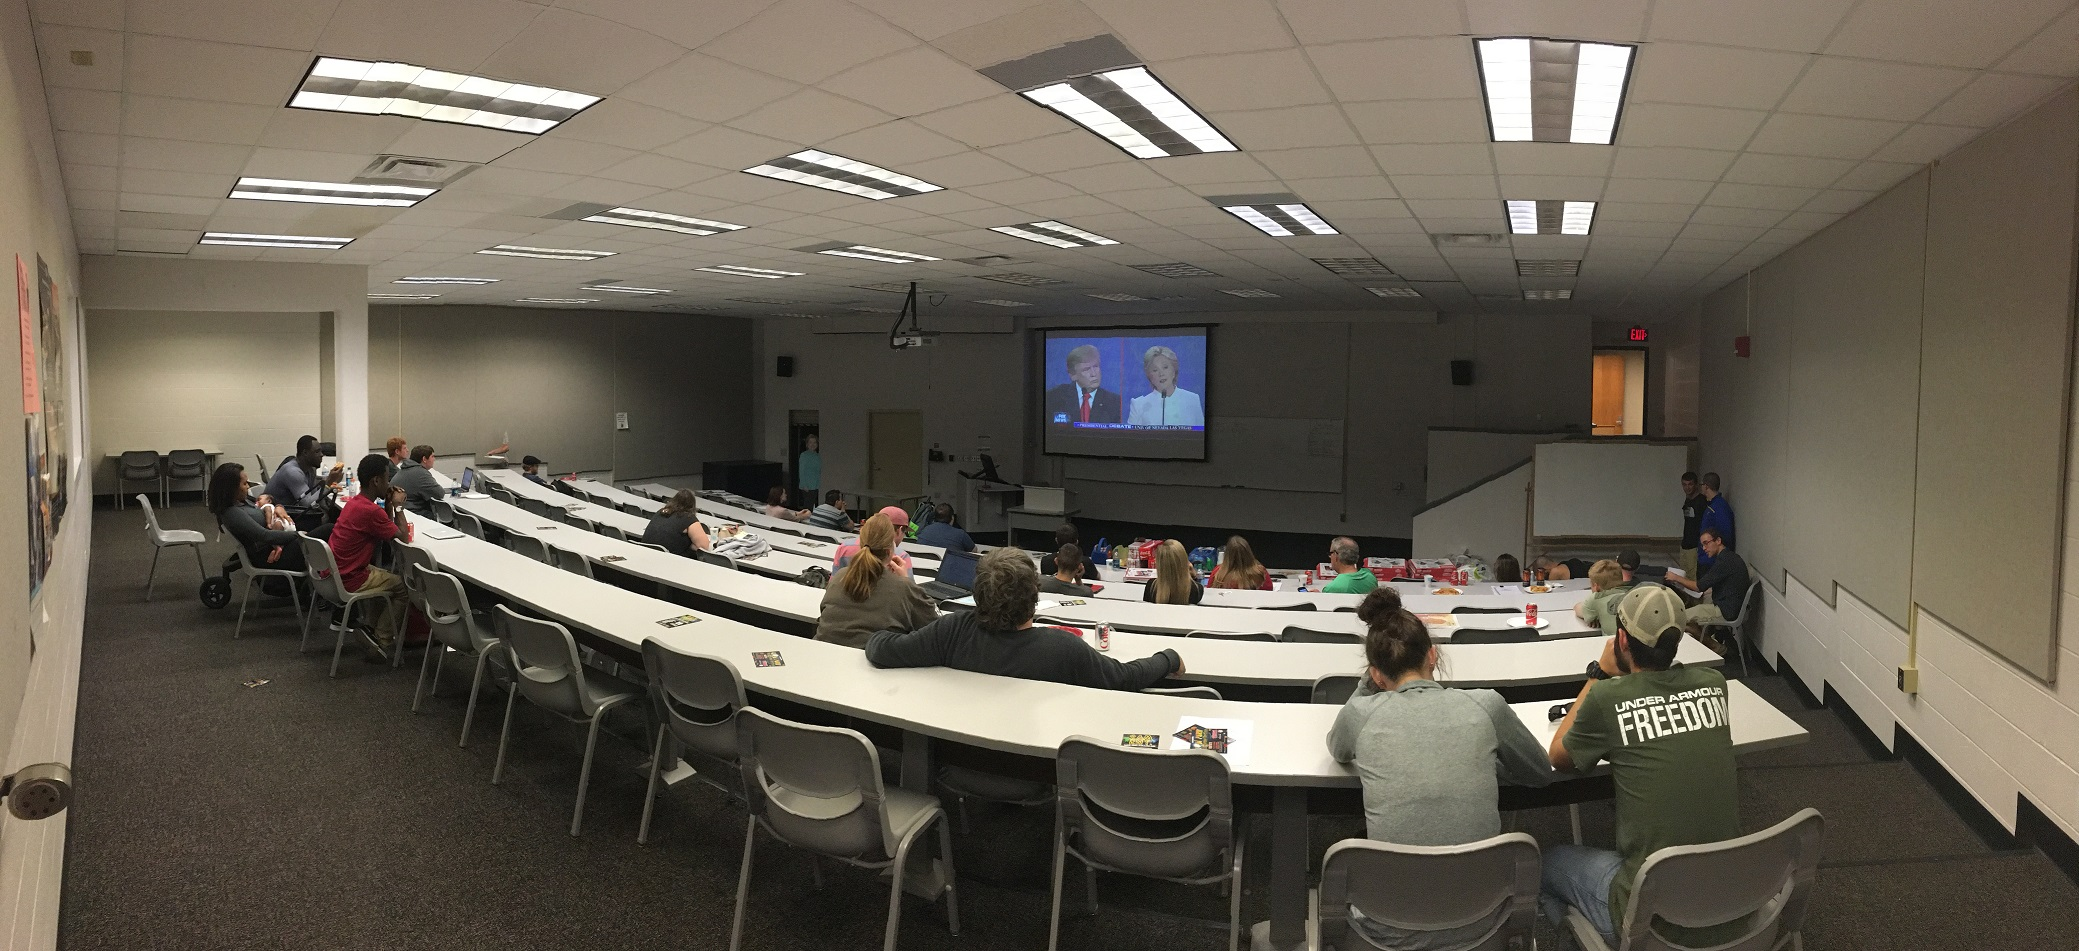 Students+watch+as+the+two+candidates+debate.